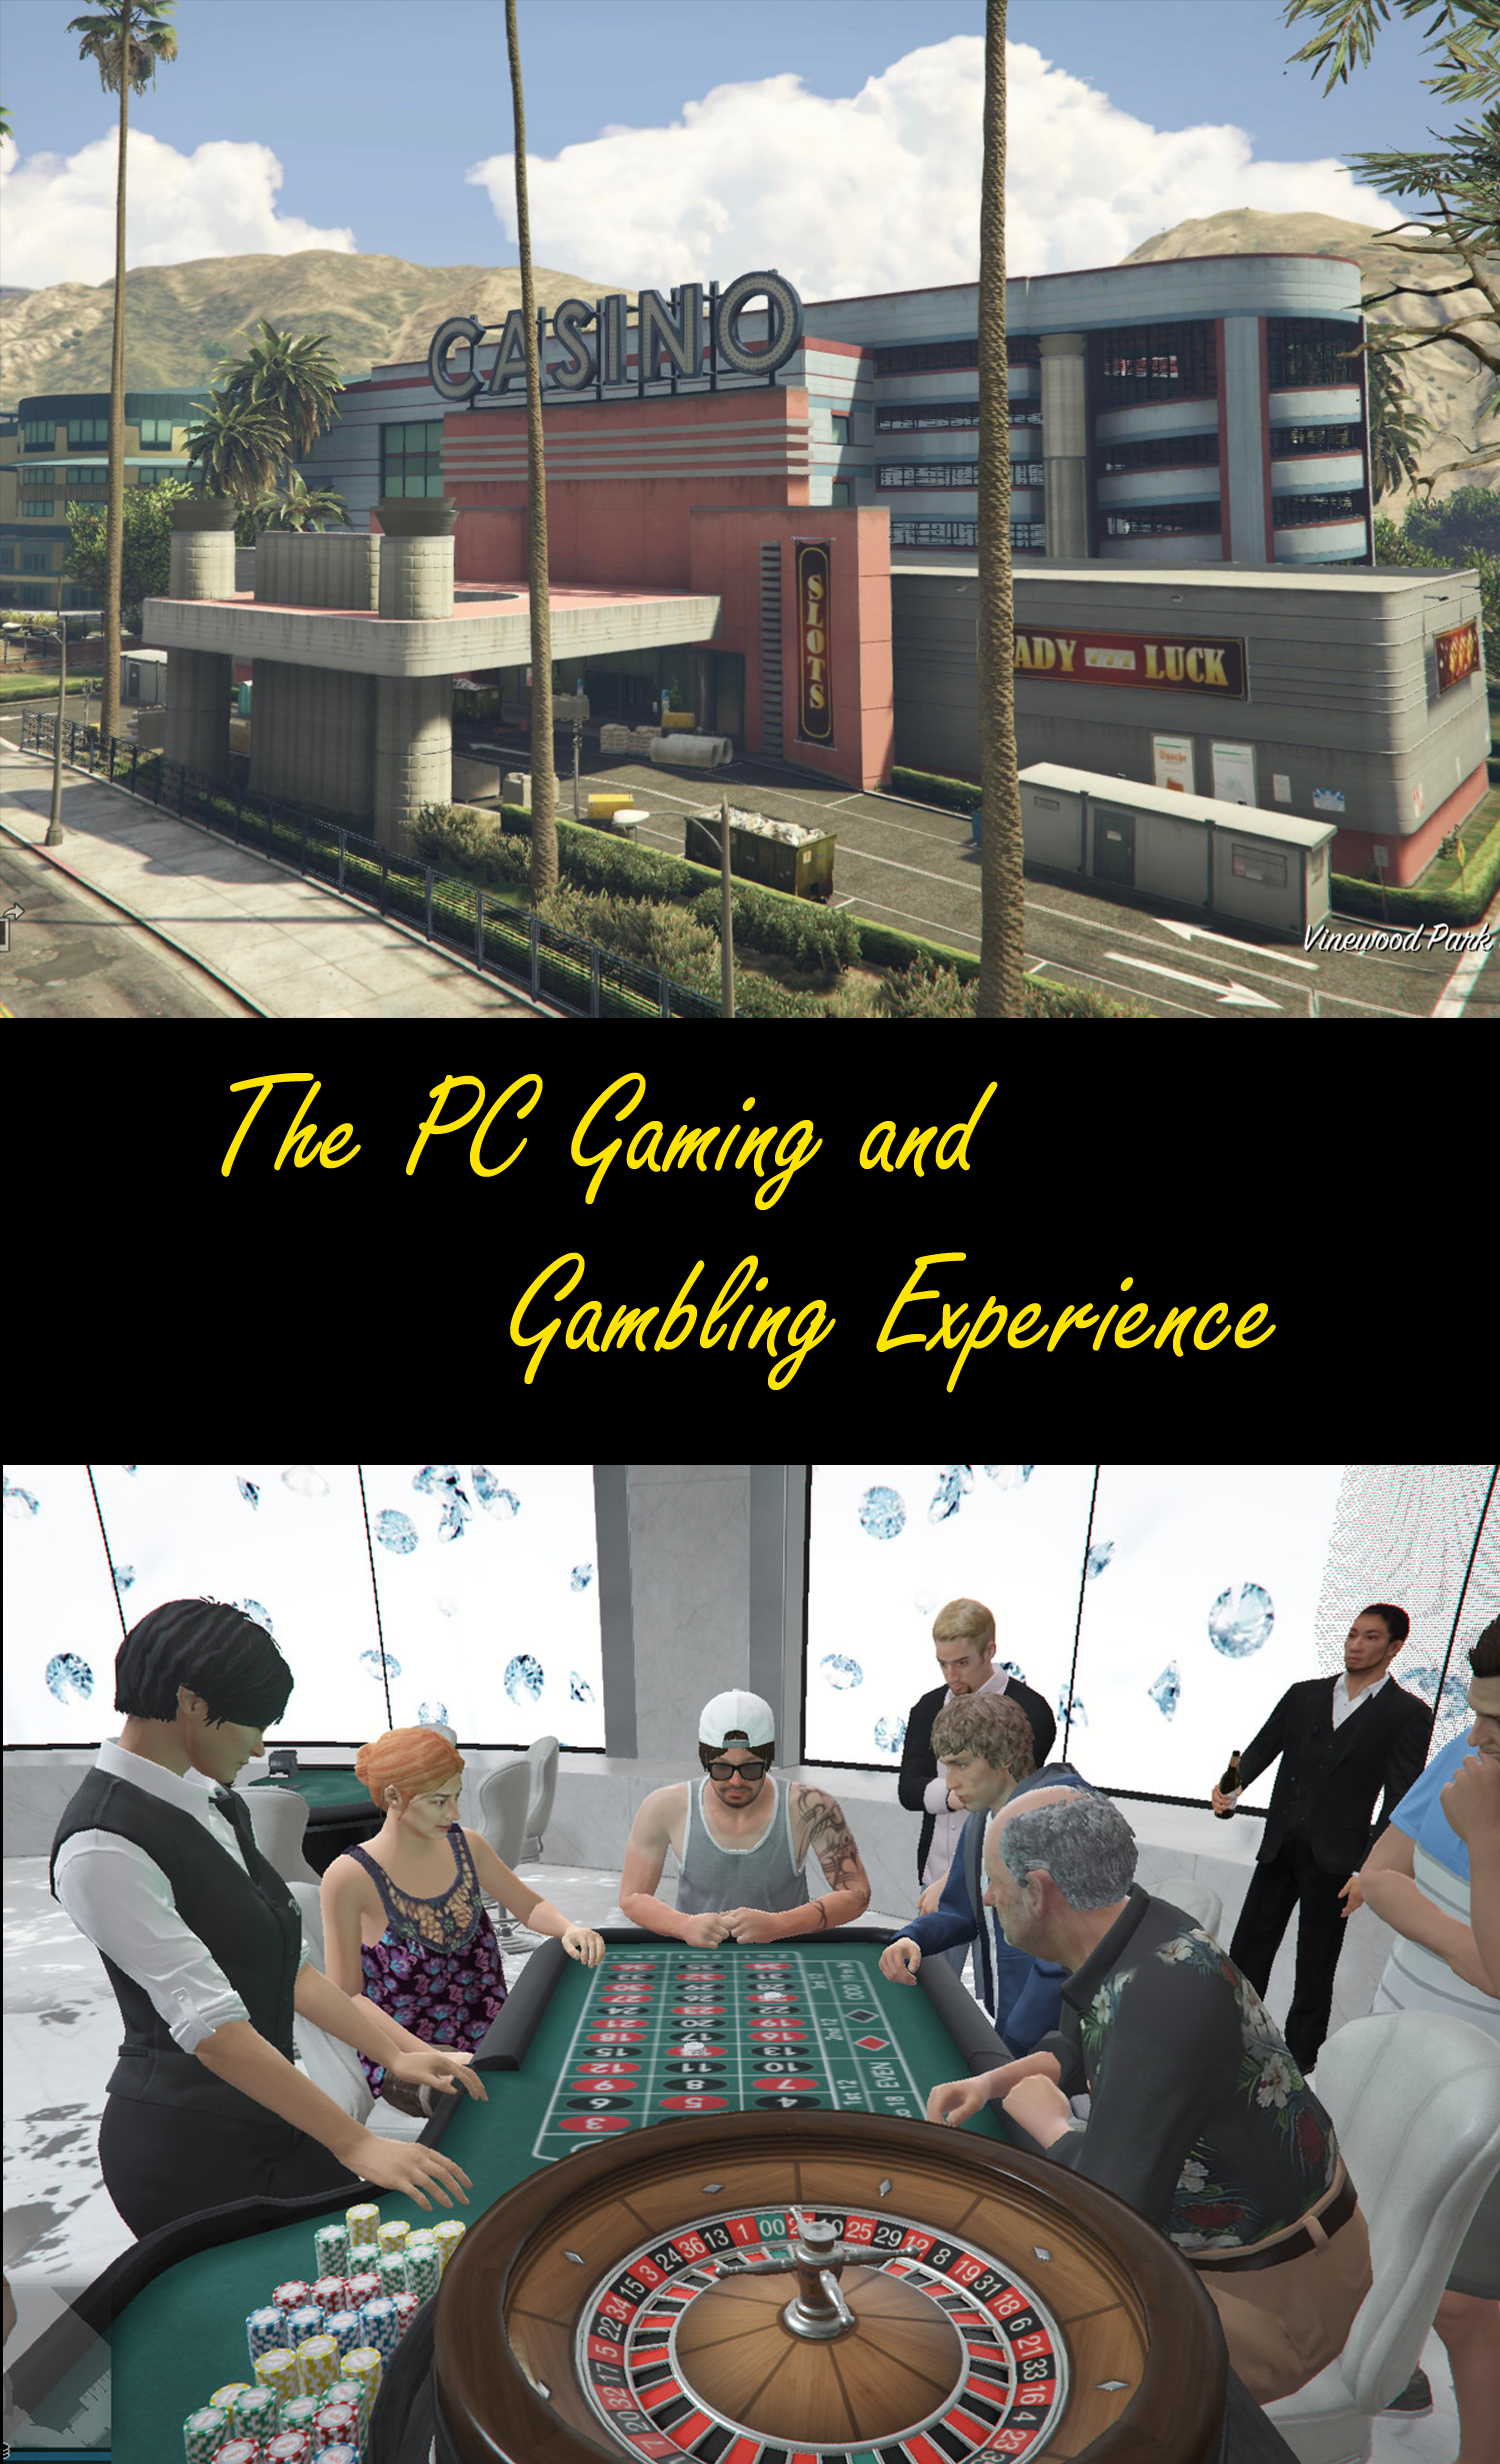 The PC Gaming and Gambling Experience